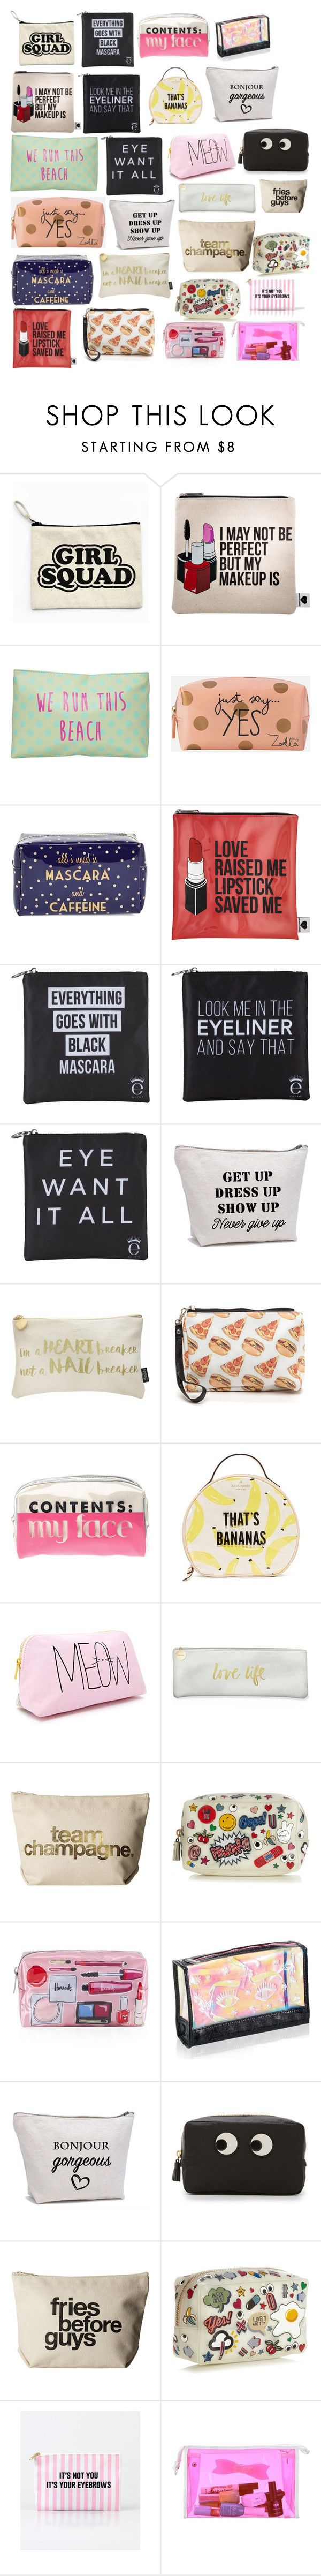 """""""Cute Makeup Bags"""" by terminally-chill ❤ liked on Polyvore featuring Sephora Collection, T-shirt & Jeans, Zoella Beauty, Tri-coastal Design, Eyeko, Nails Inc., Kate Spade, Forever 21, Fringe and Dogeared"""